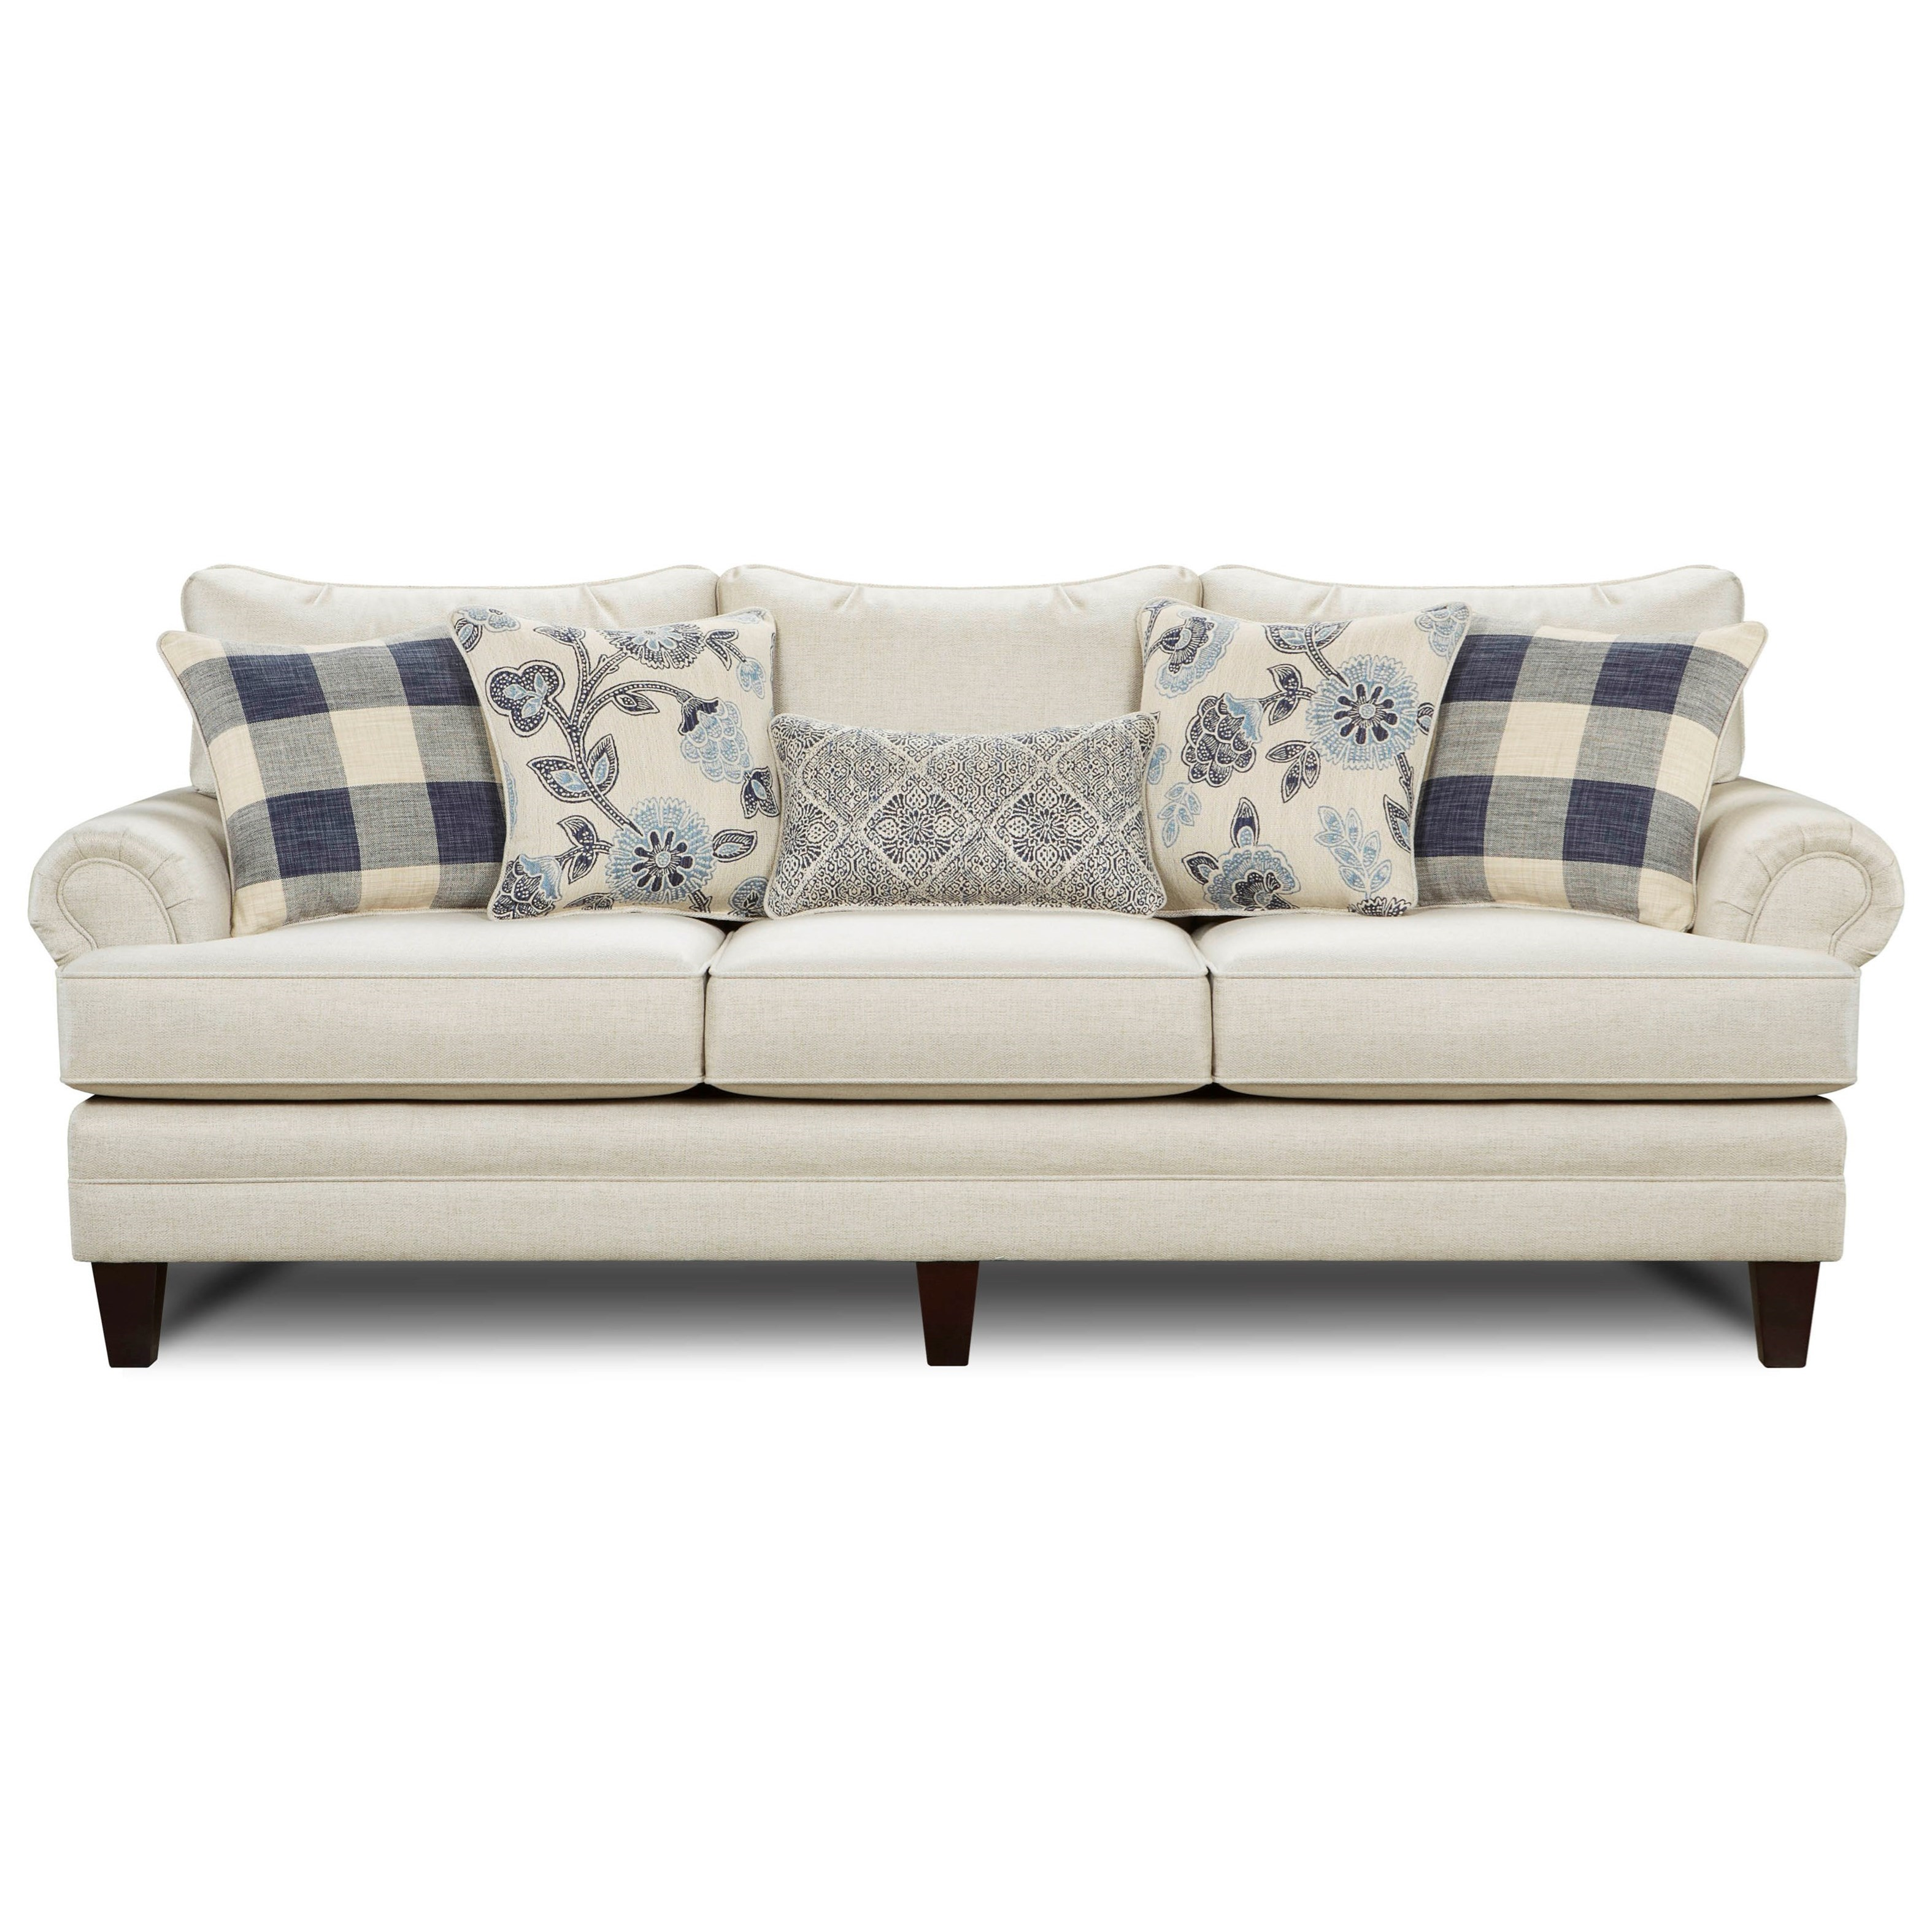 2810 Sofa by Fusion Furniture at Steger's Furniture